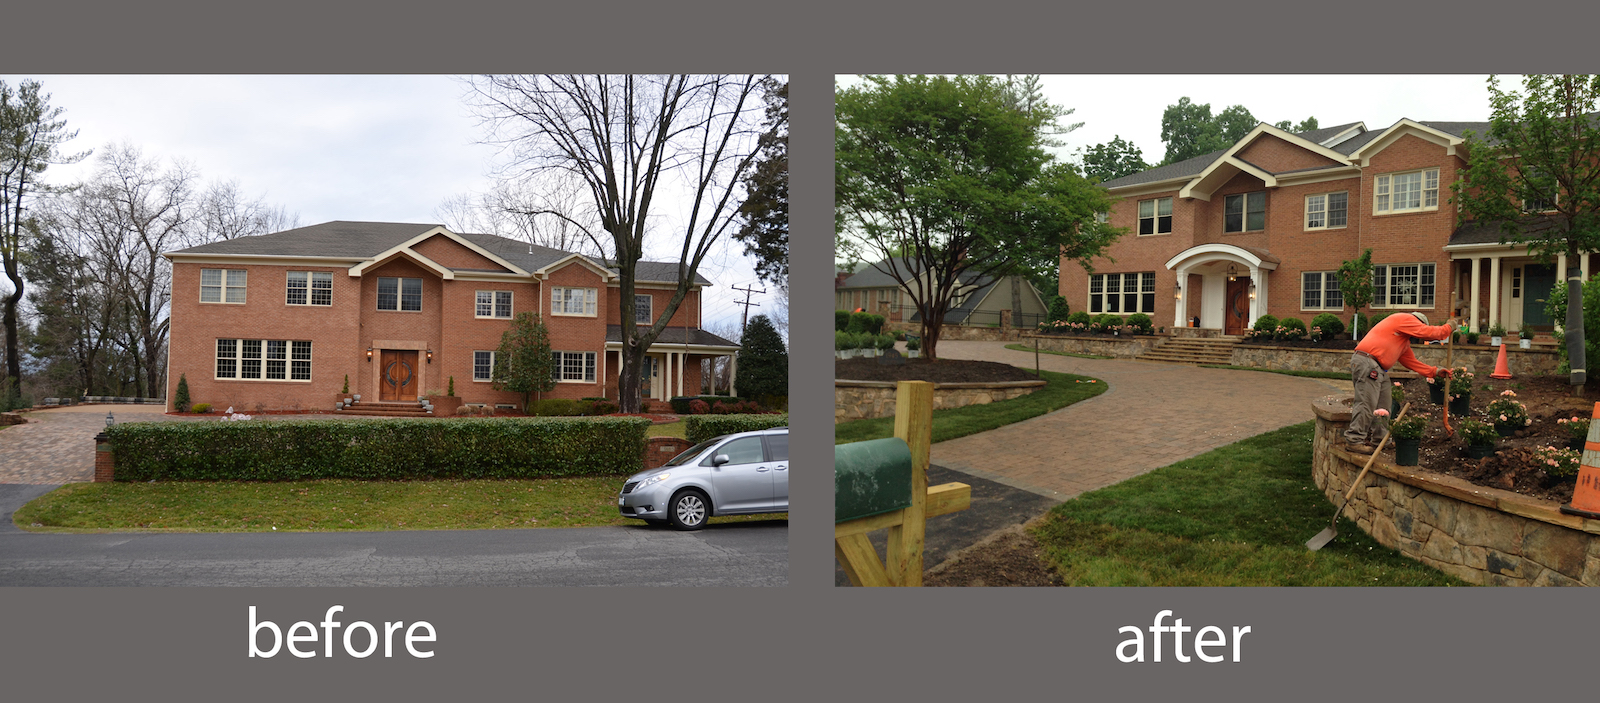 Before After Front Yard Landscape Design Cleaned Viriginia